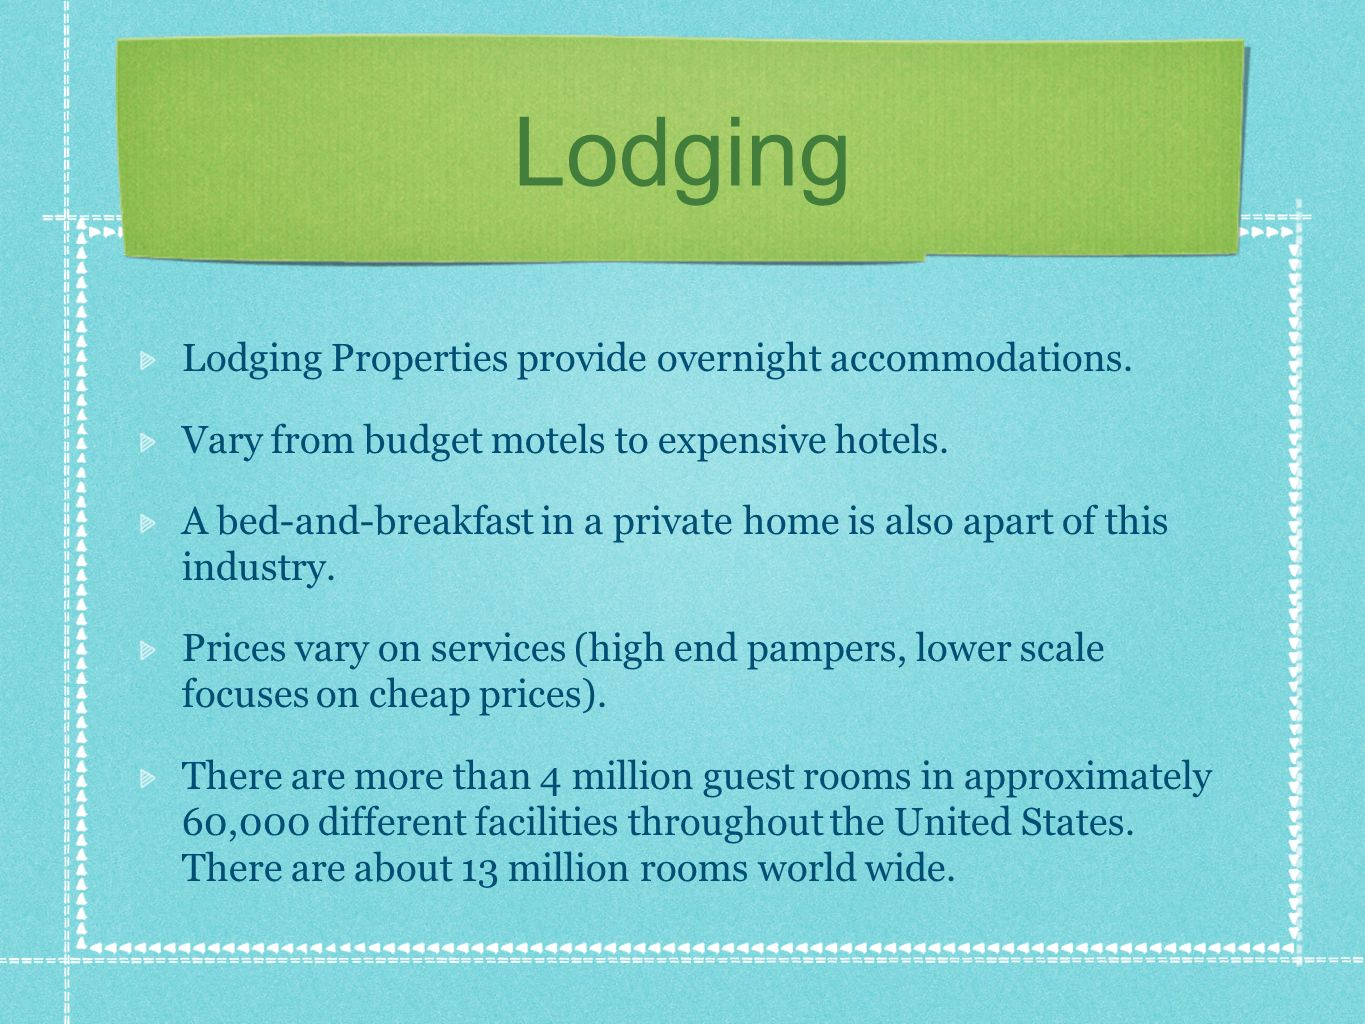 Lodging Lodging Properties provide overnight accommodations.